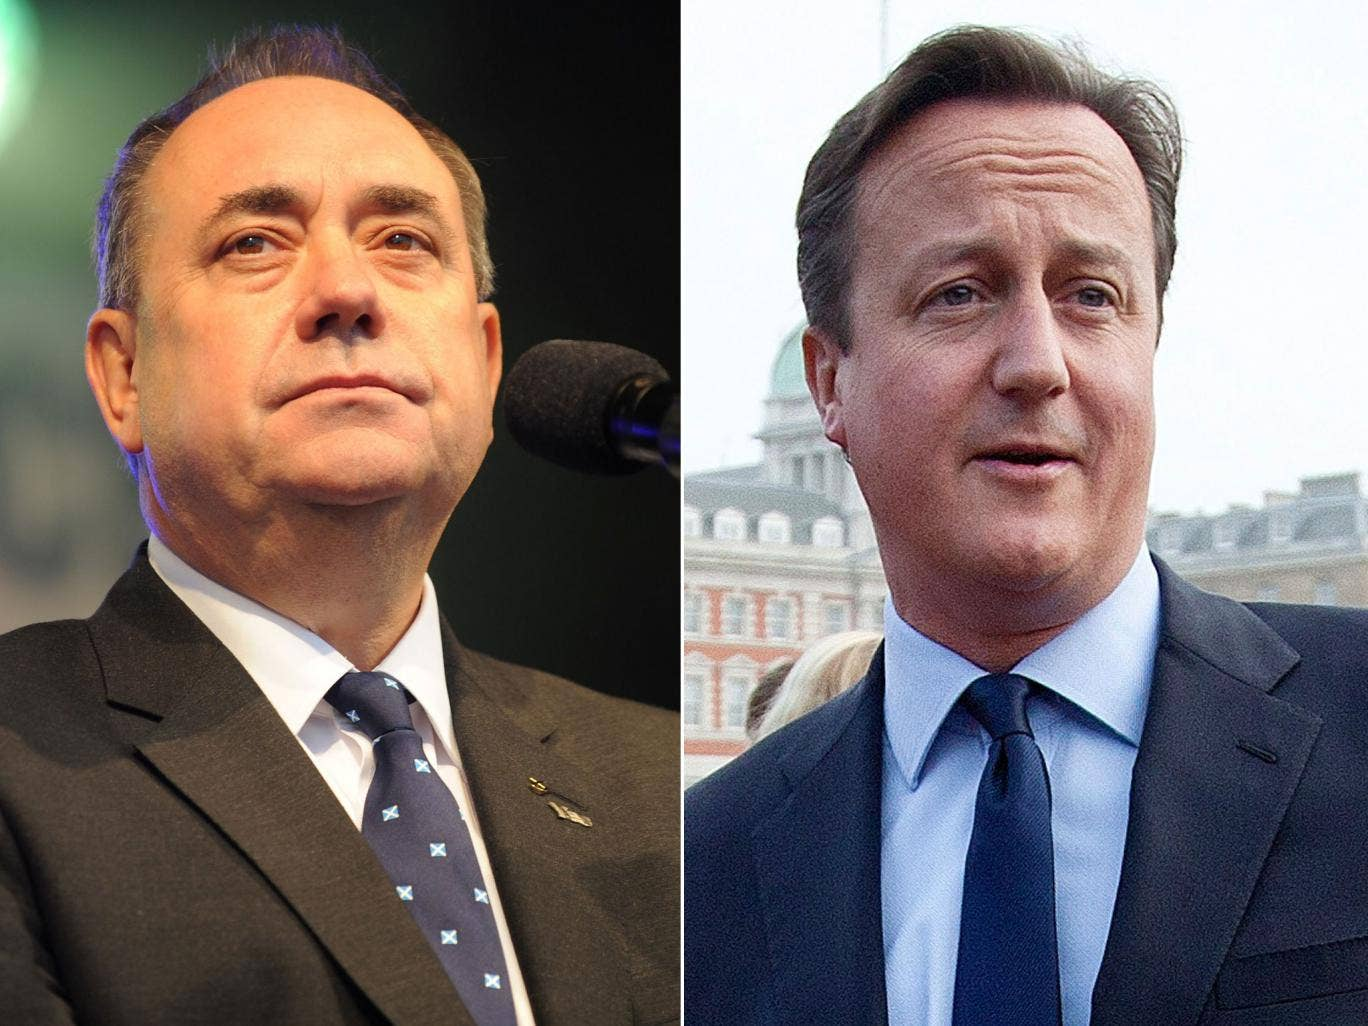 David Cameron has ruled out going head-to-head on television with Alex Salmond